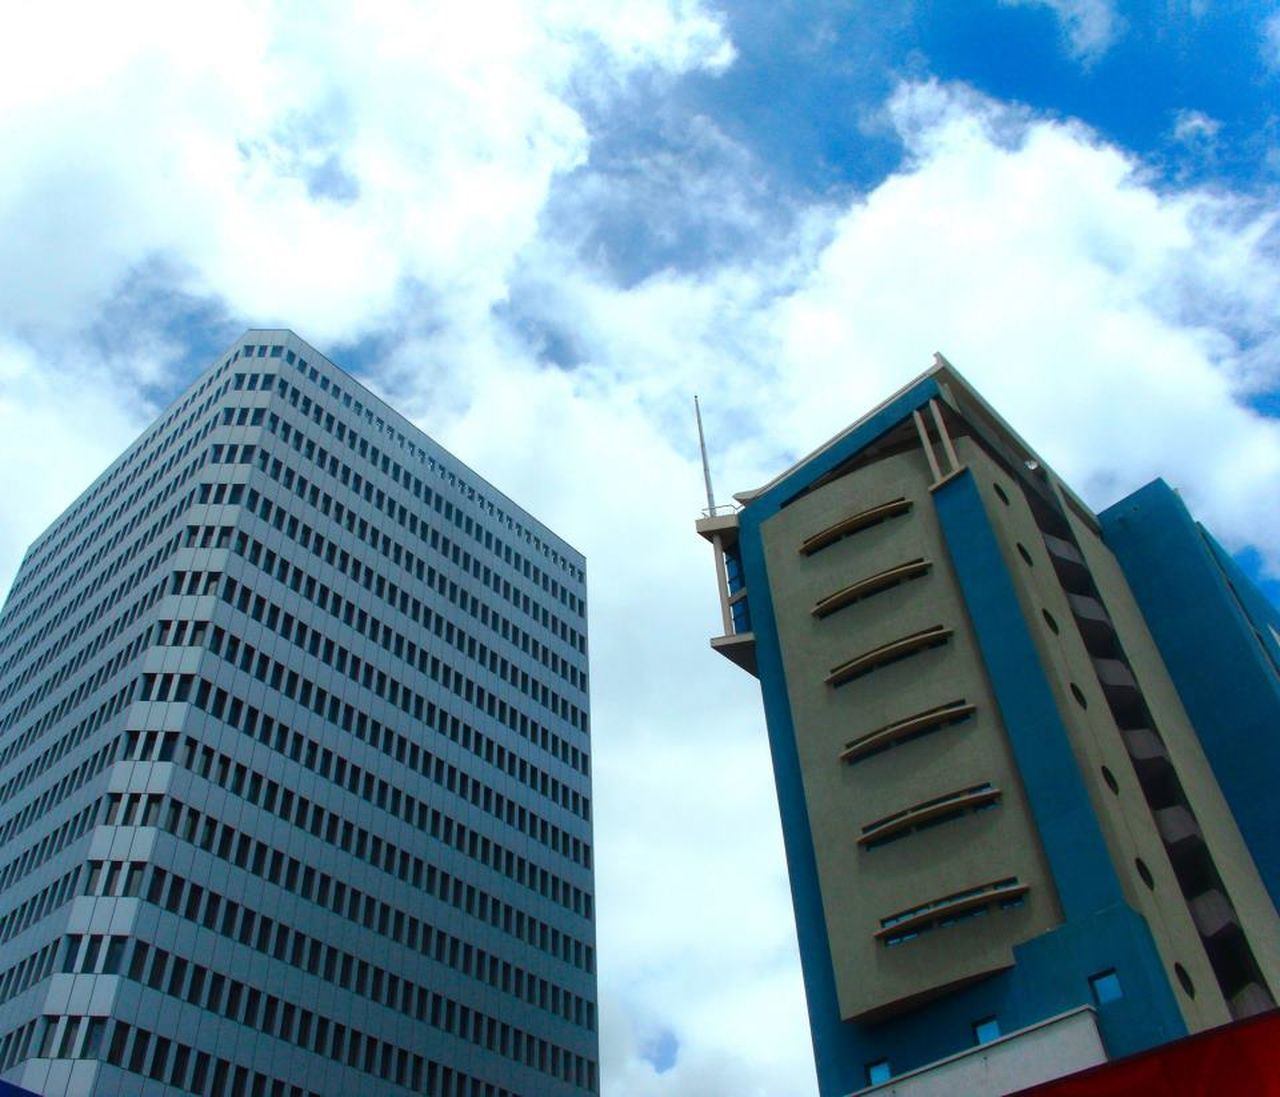 low angle view, architecture, building exterior, sky, cloud - sky, built structure, modern, skyscraper, day, no people, outdoors, tall, city